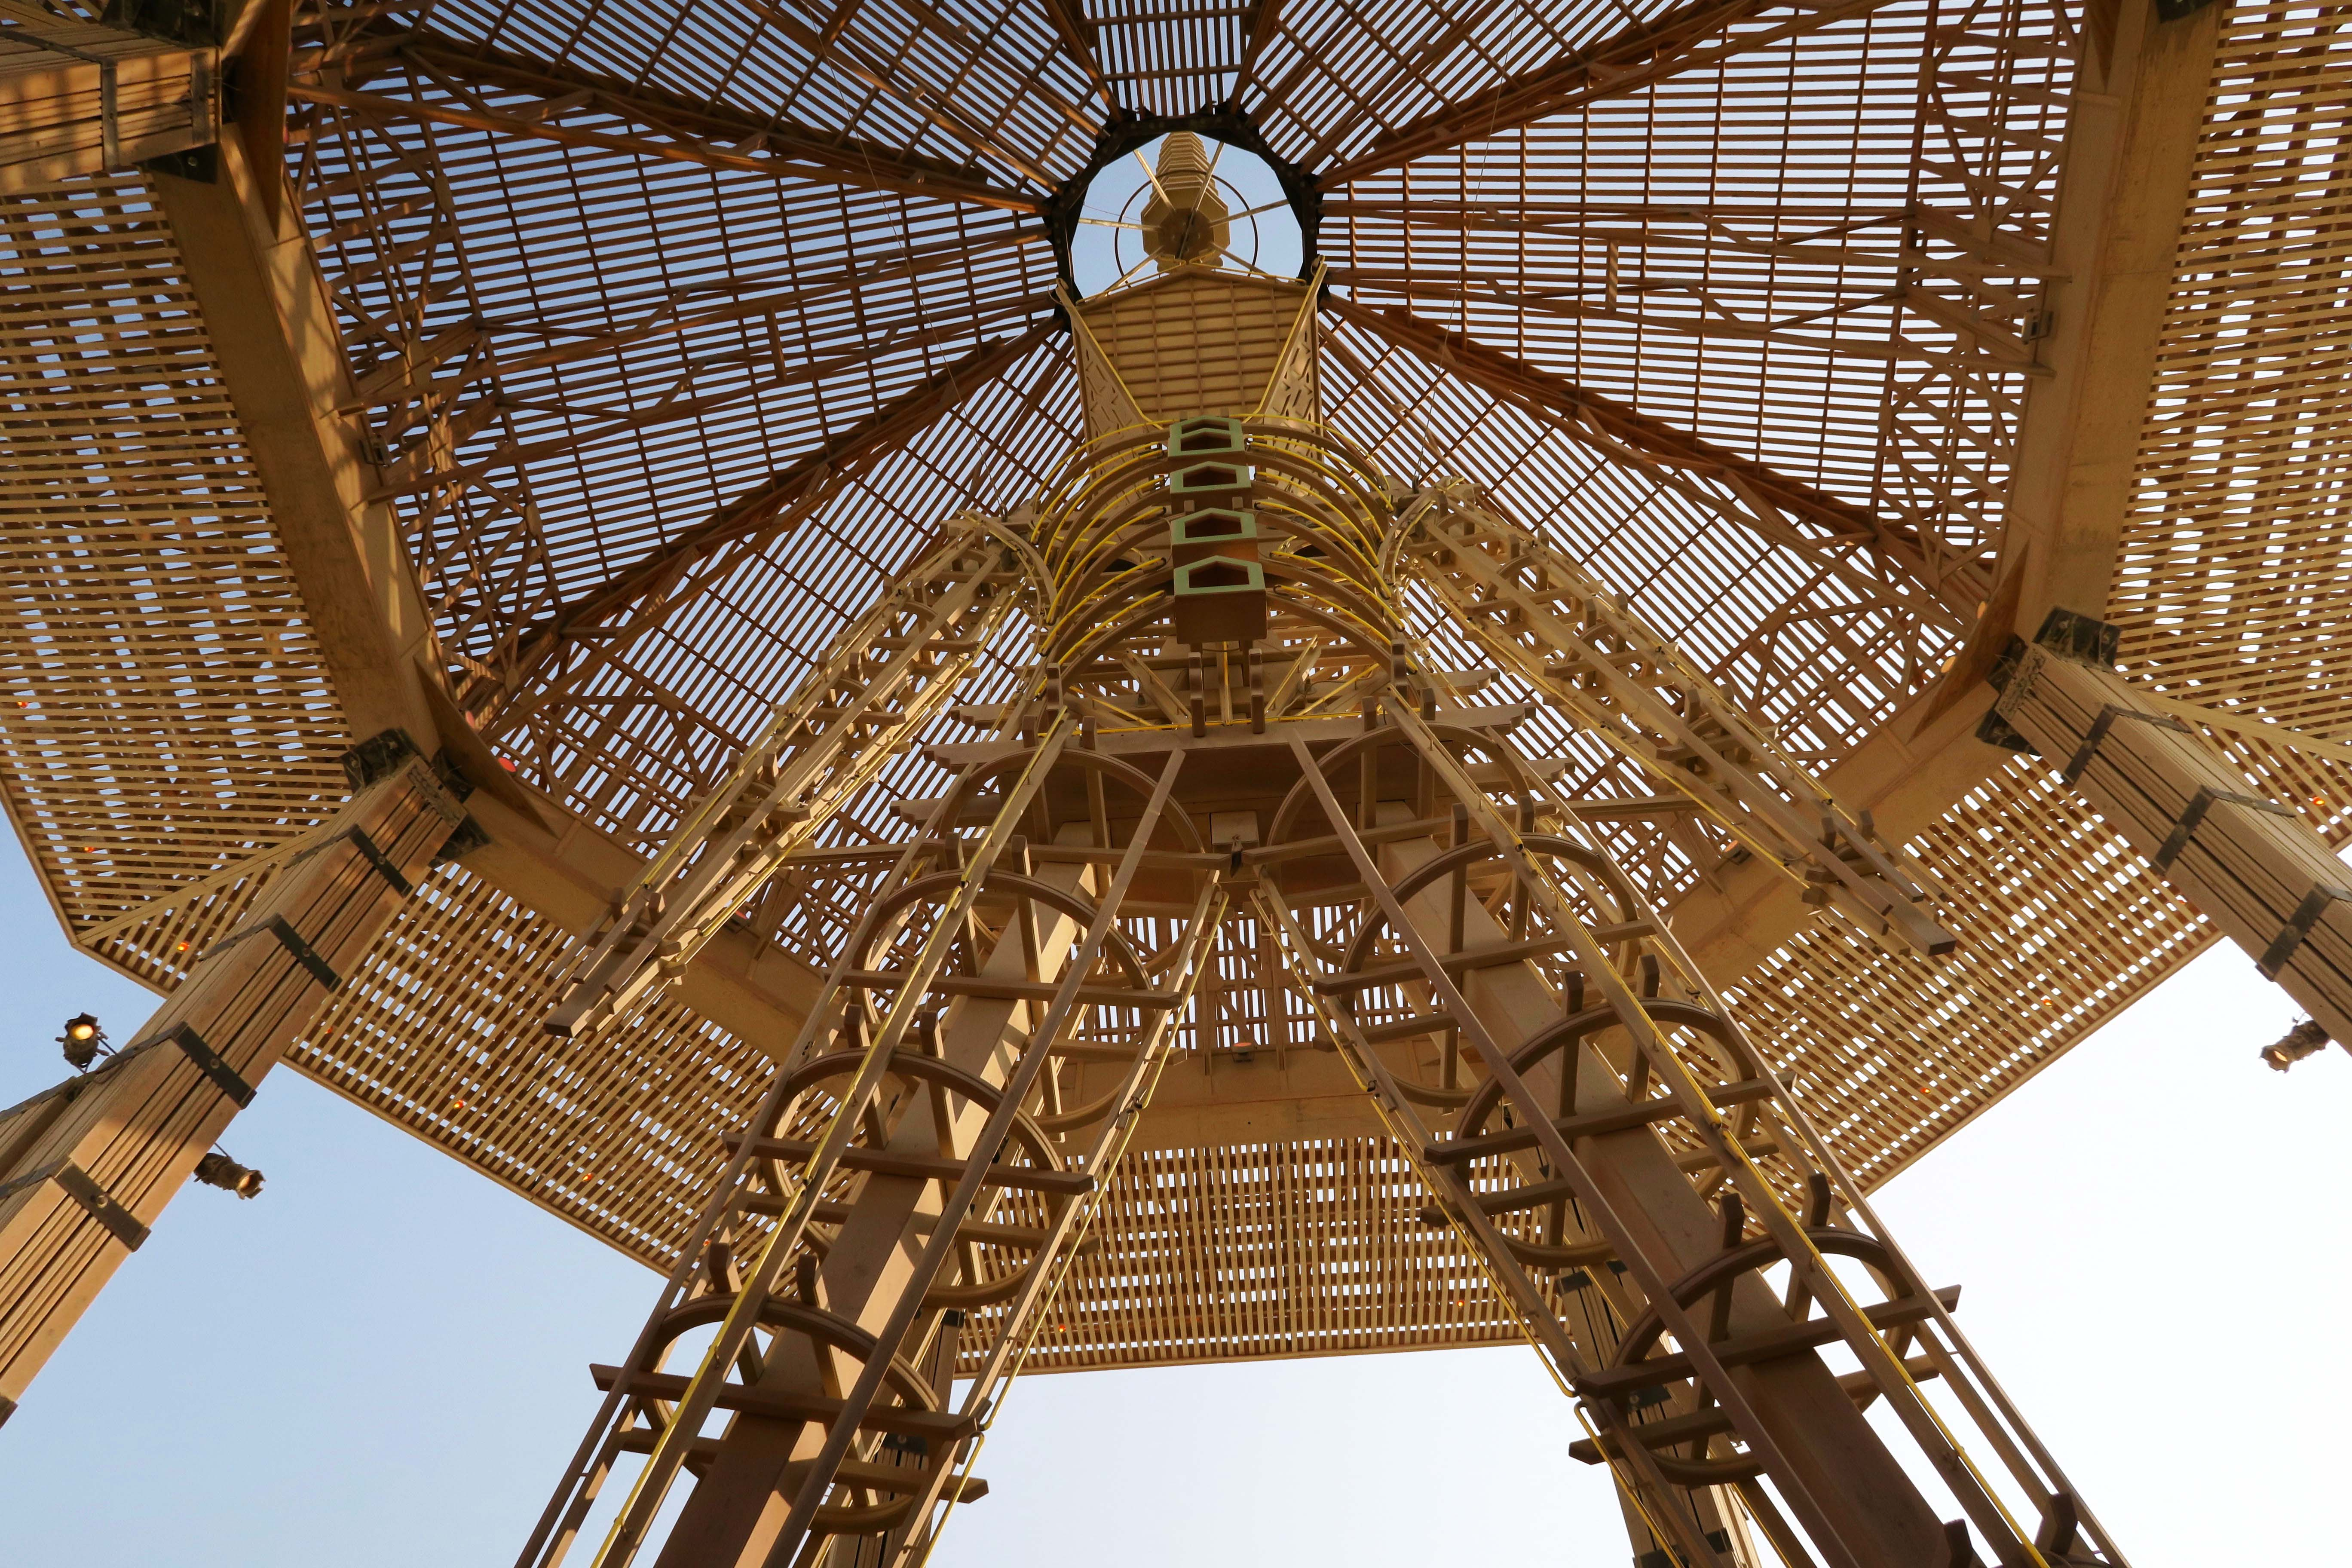 Looking up at Man in Temple of the Golden Spike, Burning Man 2017